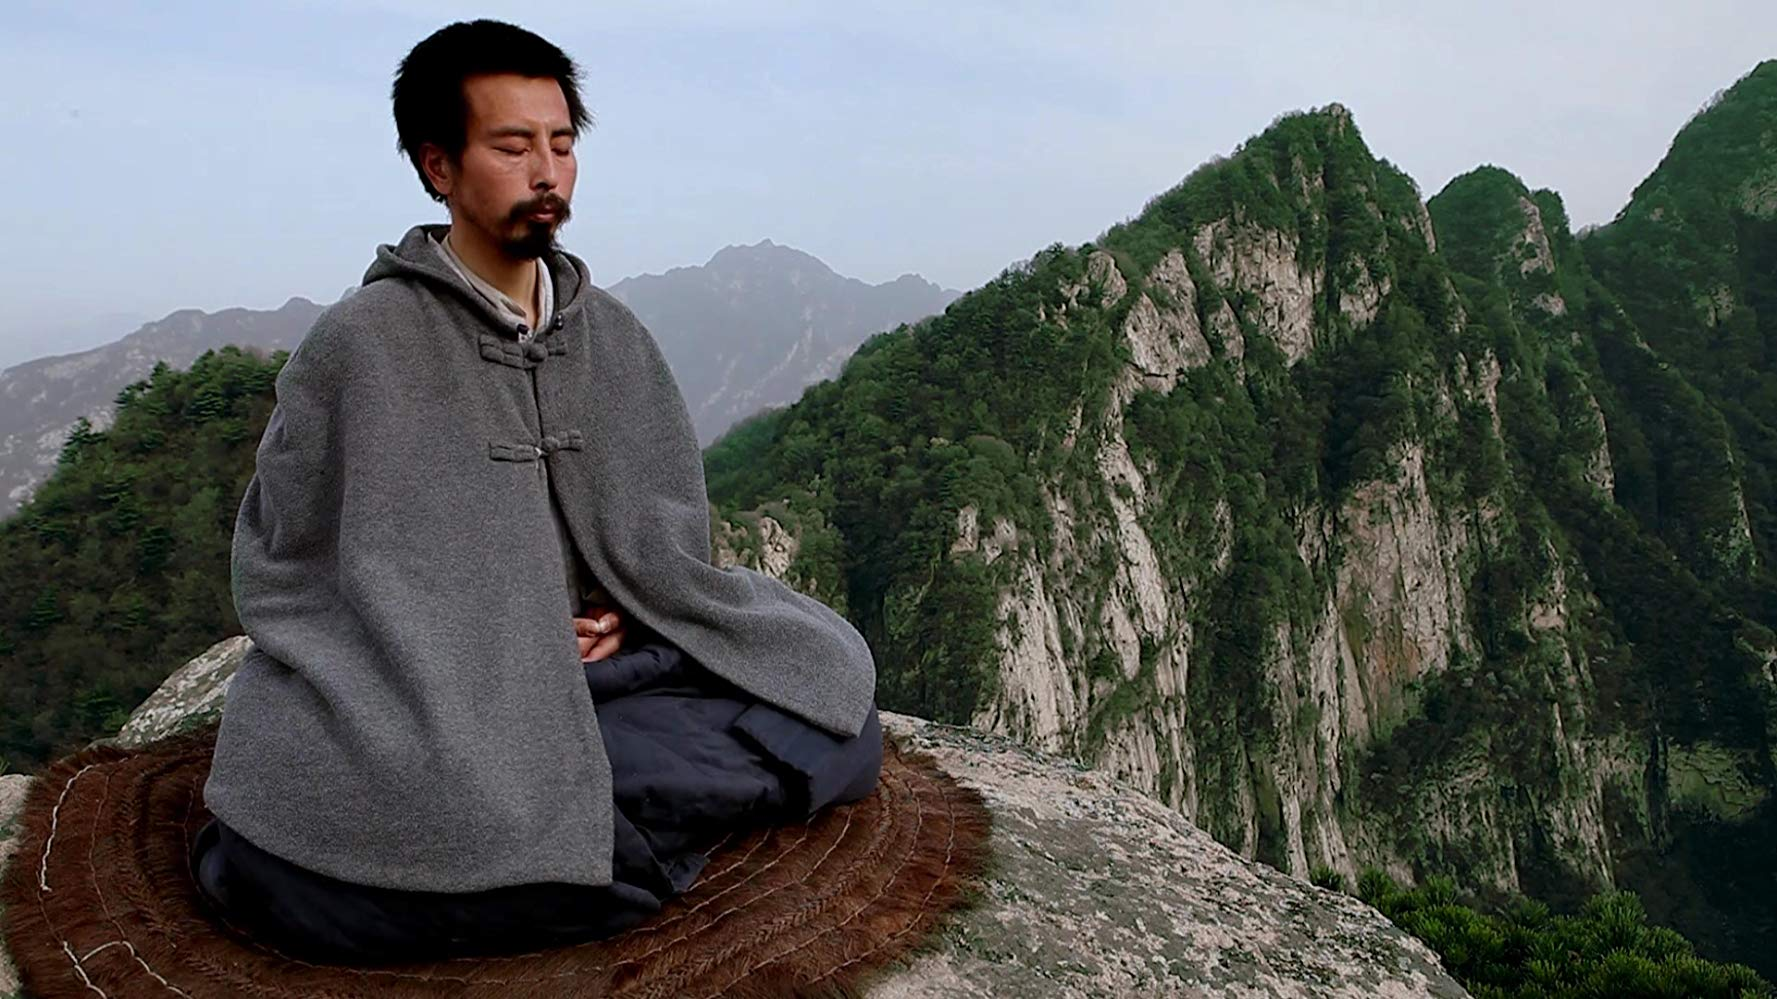 A Chinese hermit meditates high above the Zhongnan Mountains in China